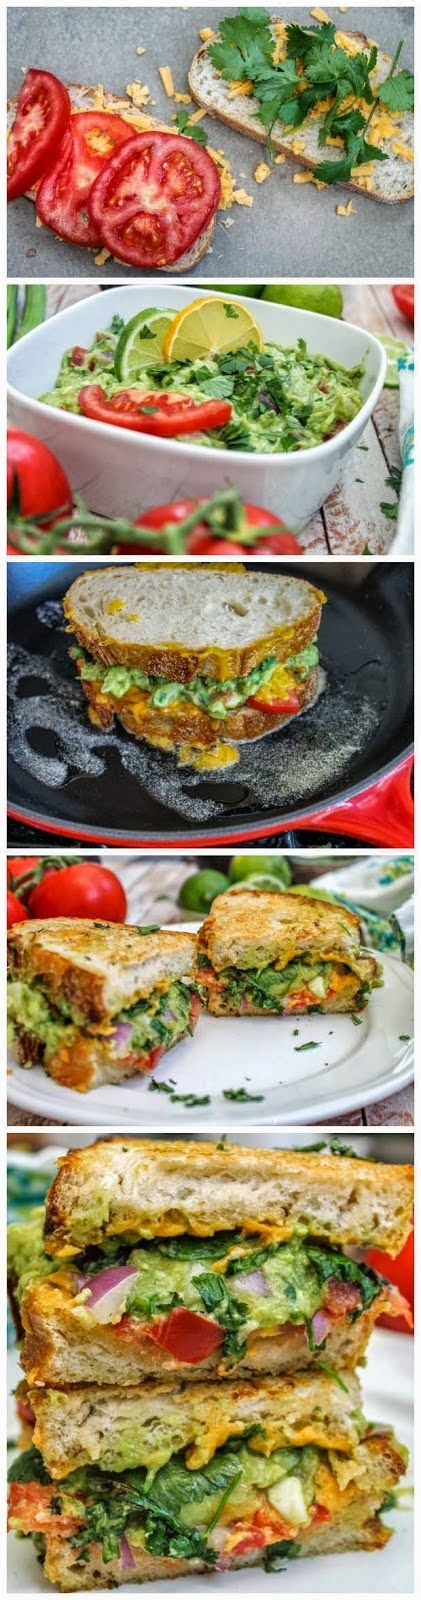 Guacamole Grilled Cheese Sandwich | Food Blog